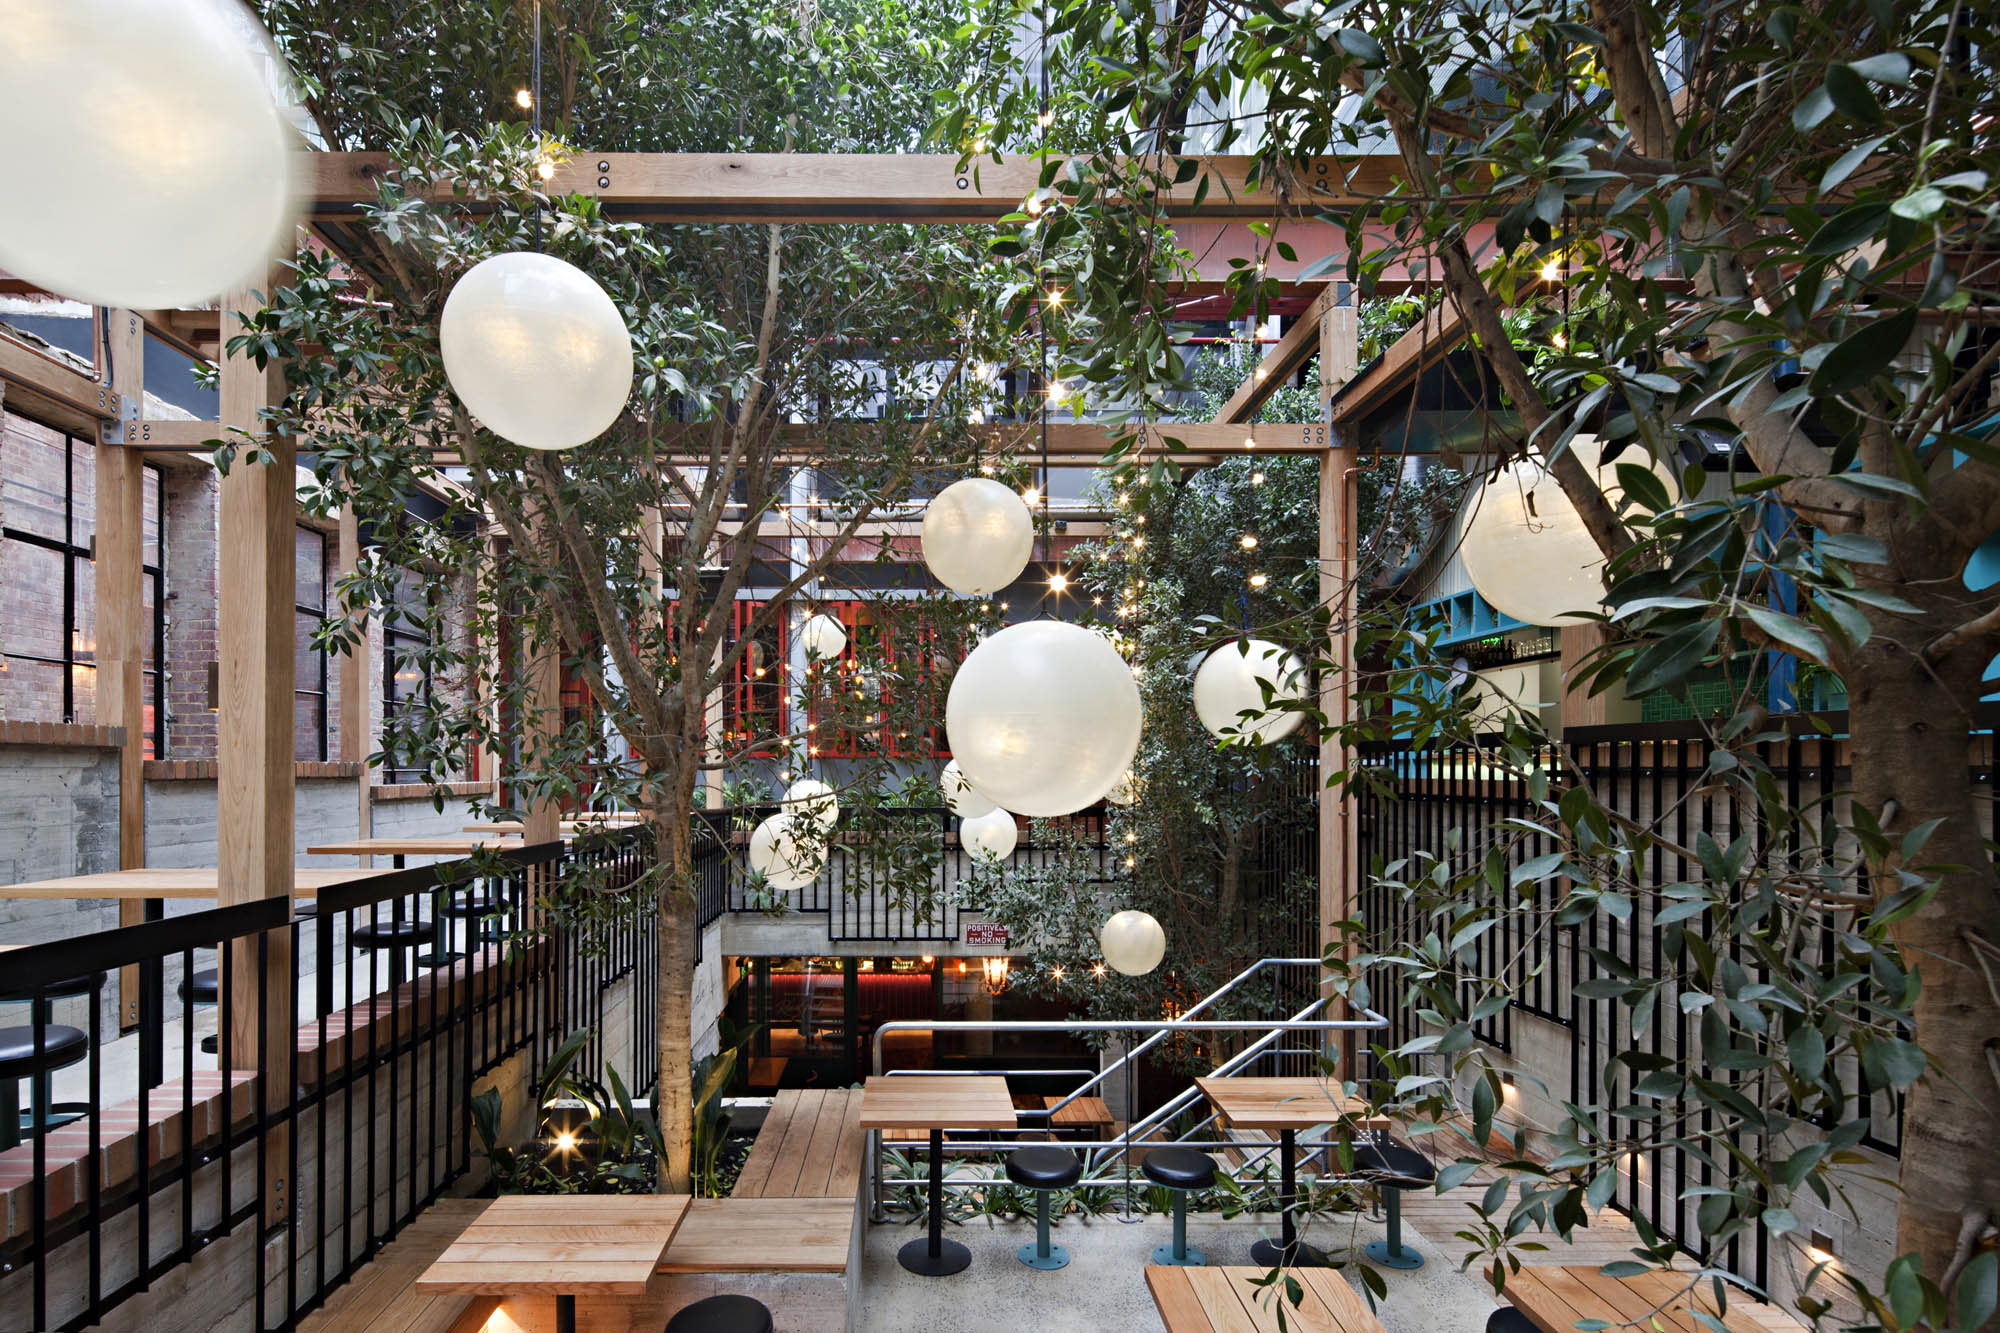 garden state hotel melbourne fitout alfresco dining outdoor pendant lighting trees stairs